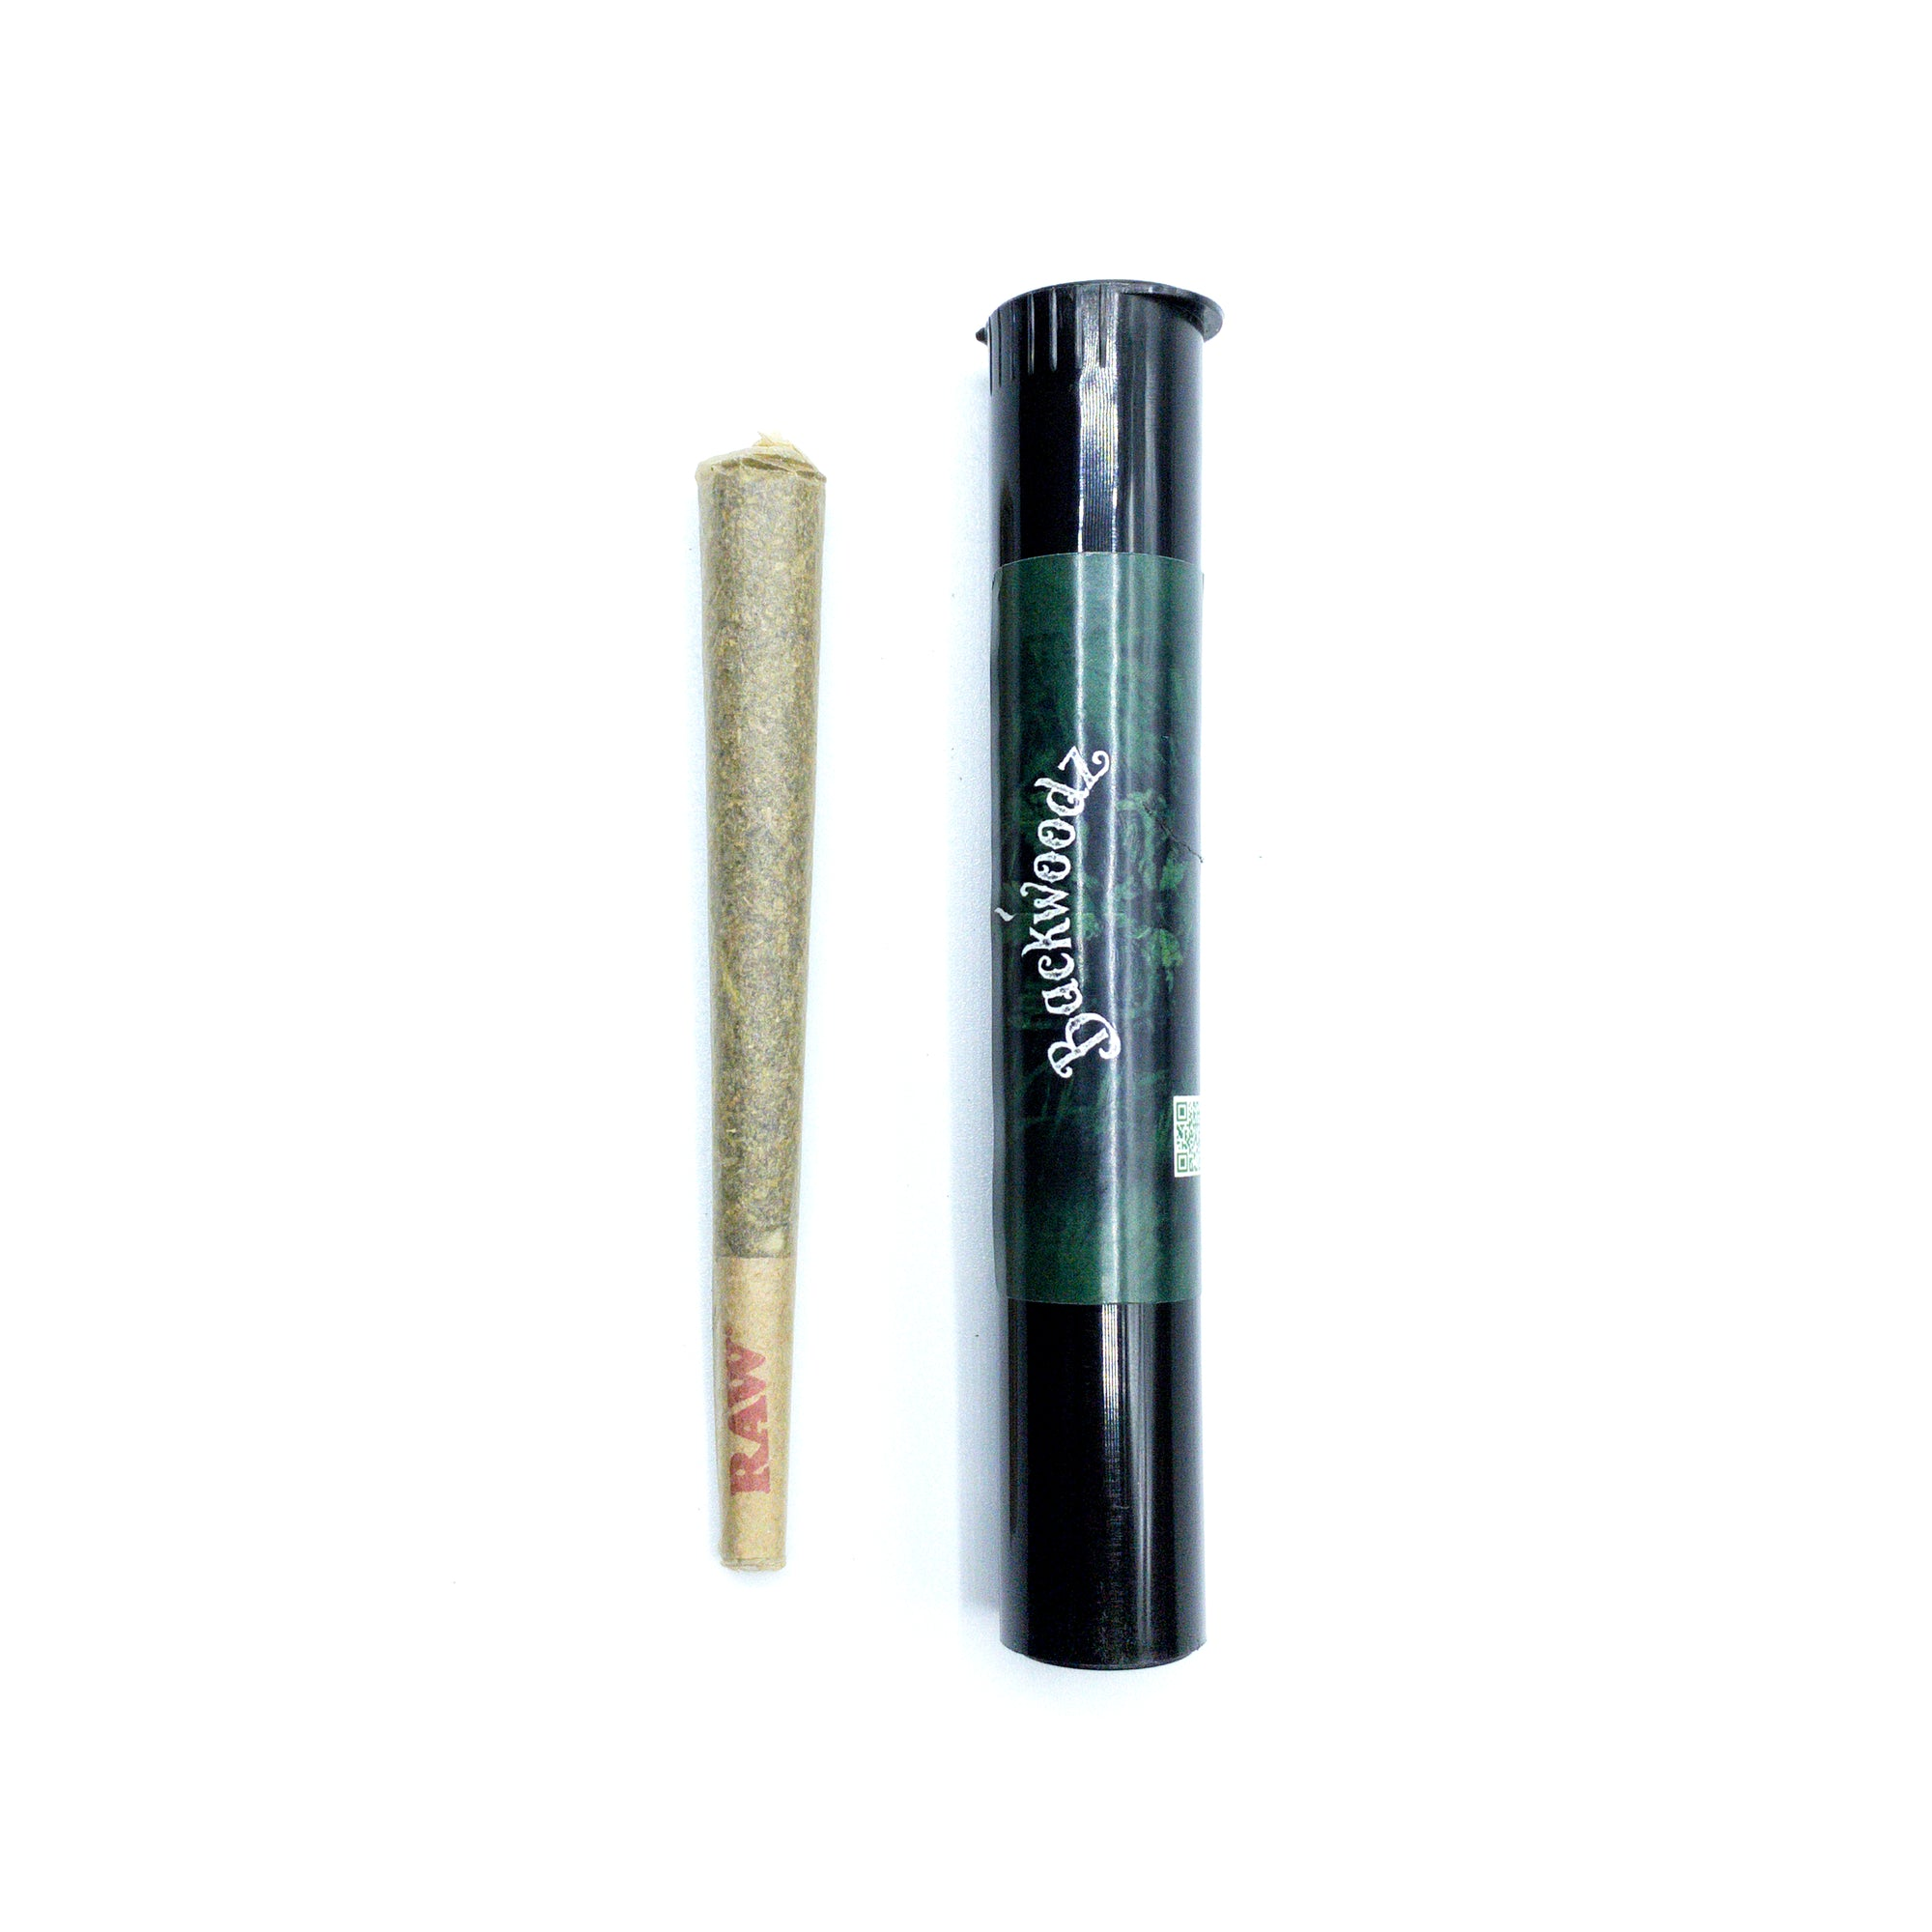 CBD Hemp Flower Preroll - BackWoodz CBD